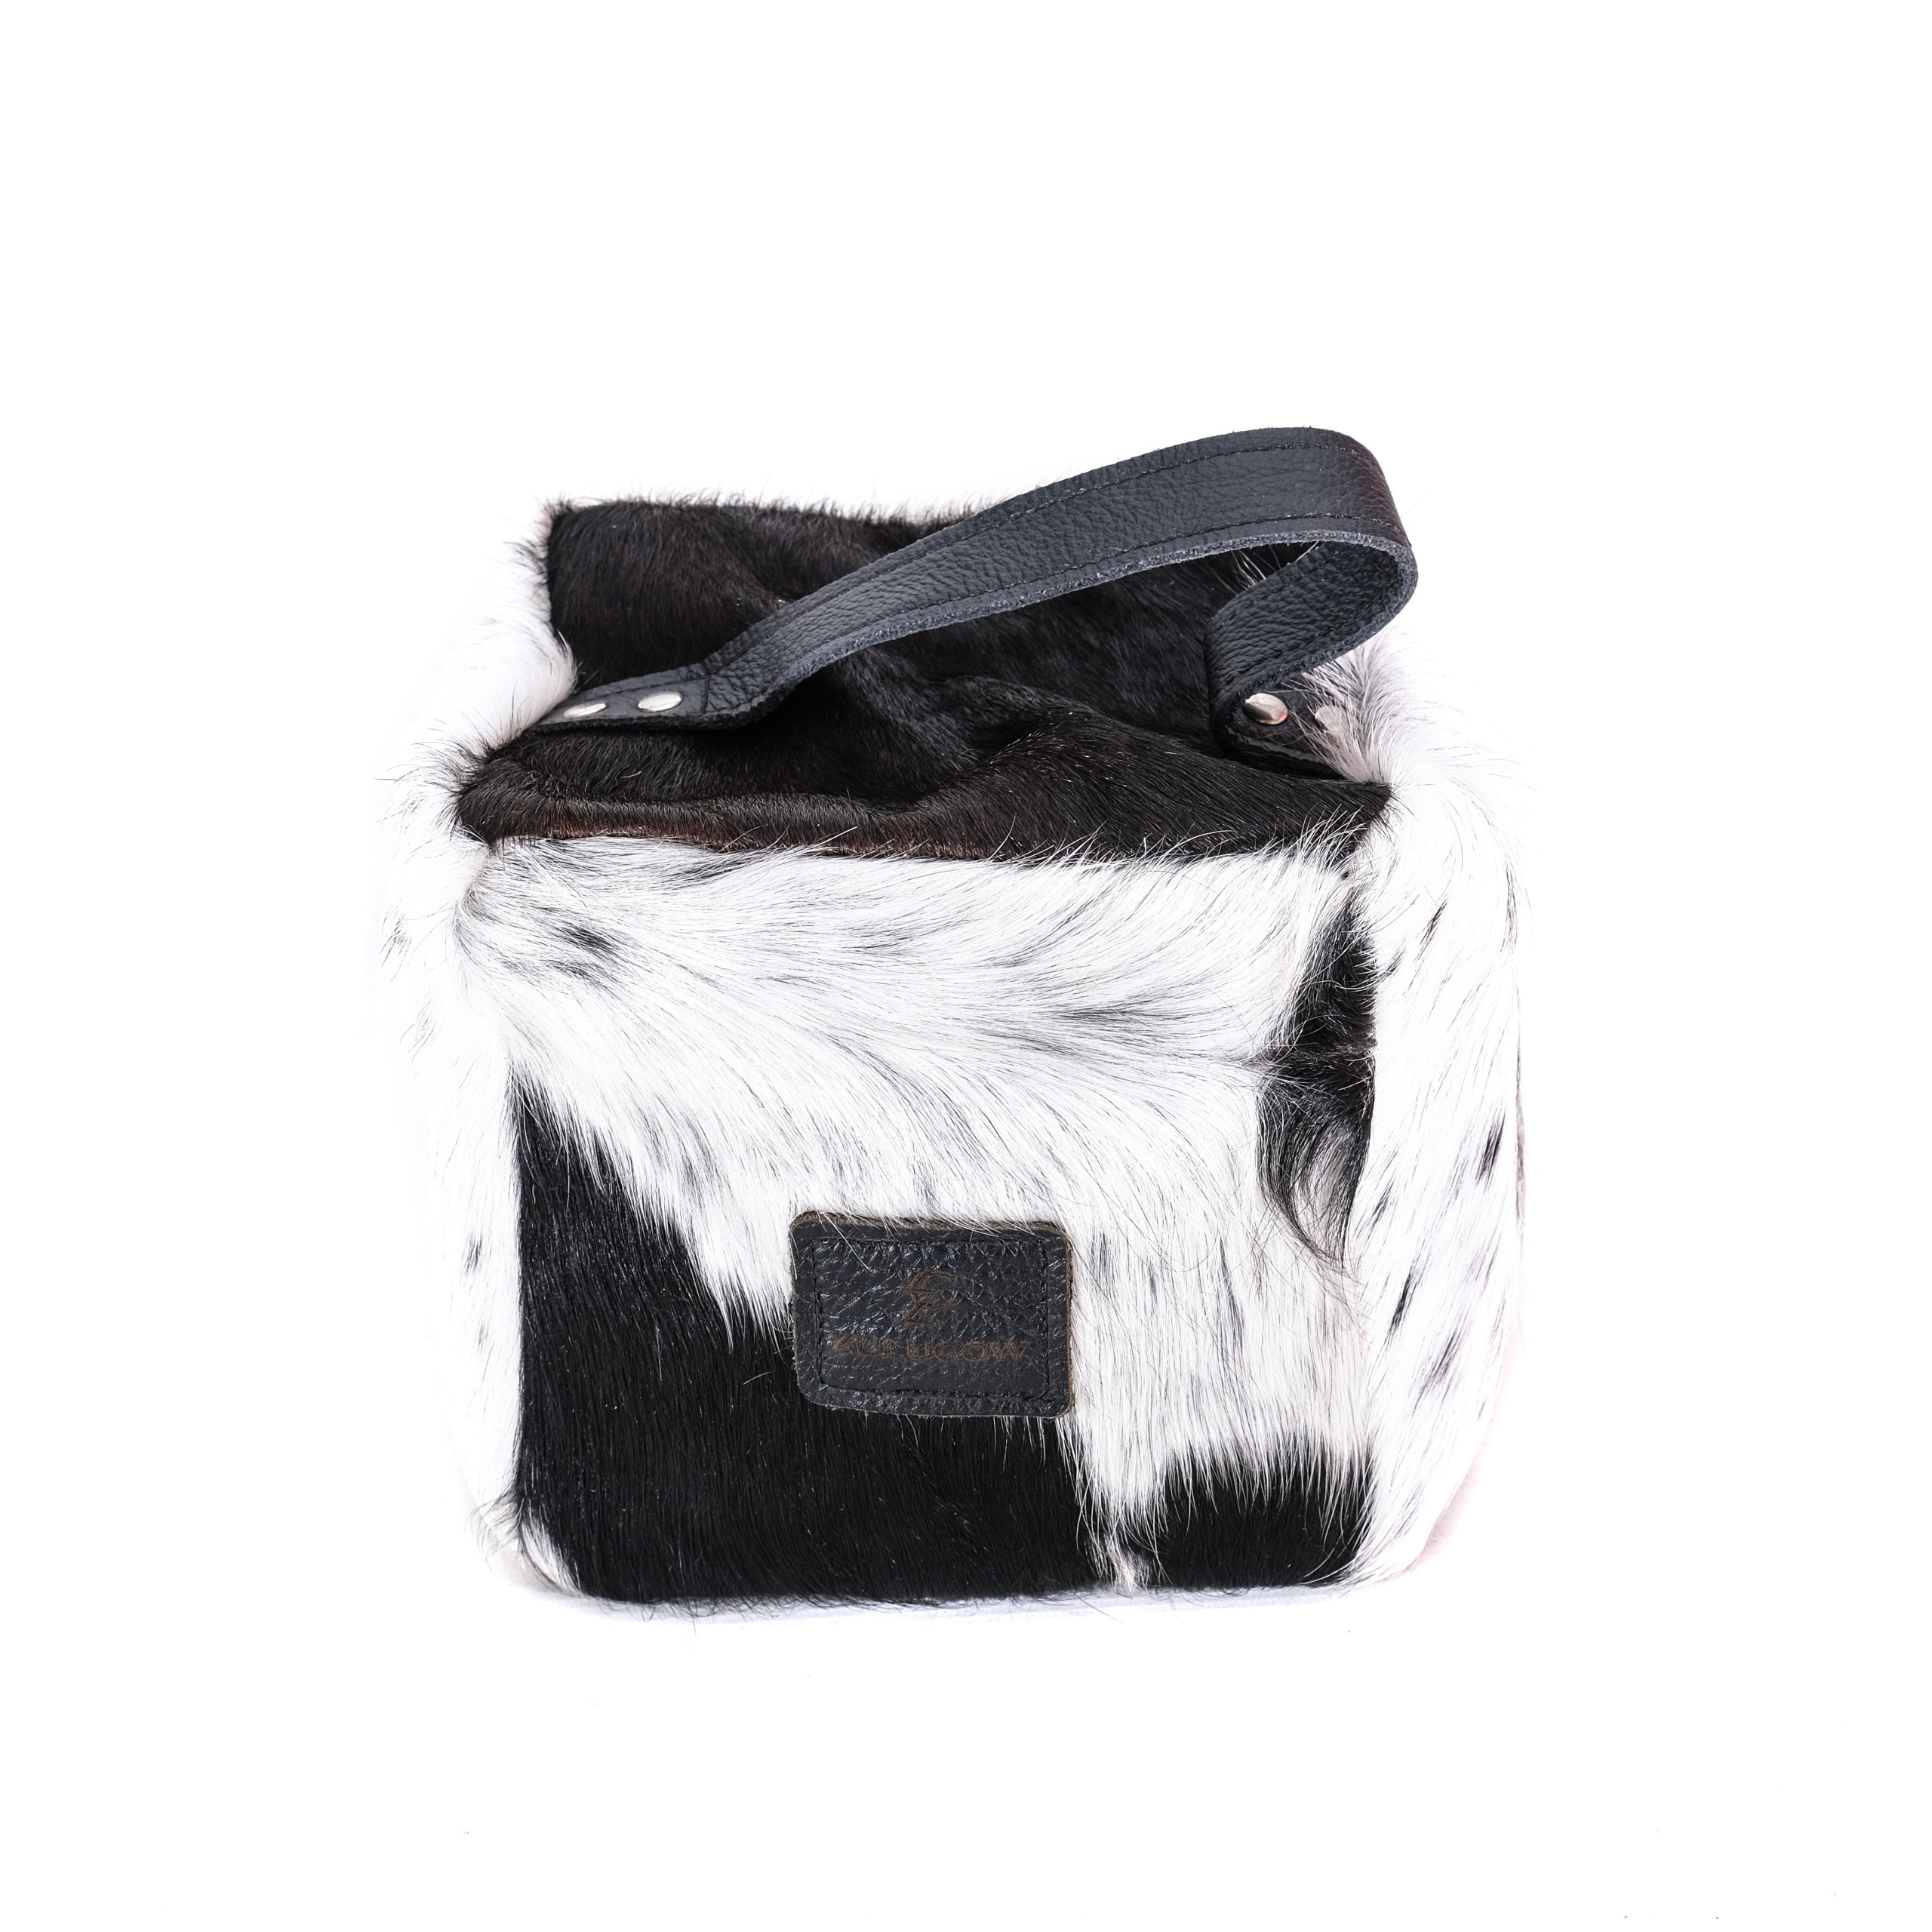 black and white, cowhide door stop, animal print, sustainable, ethical, handmade, leather door stop